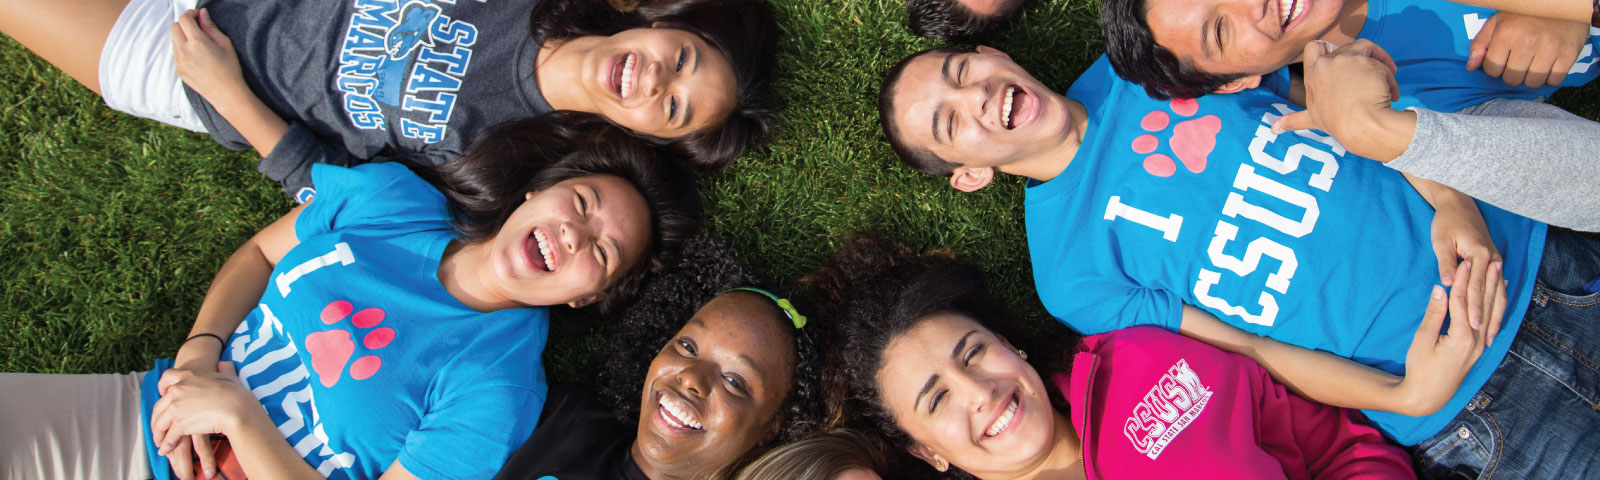 diverse students laying on grass